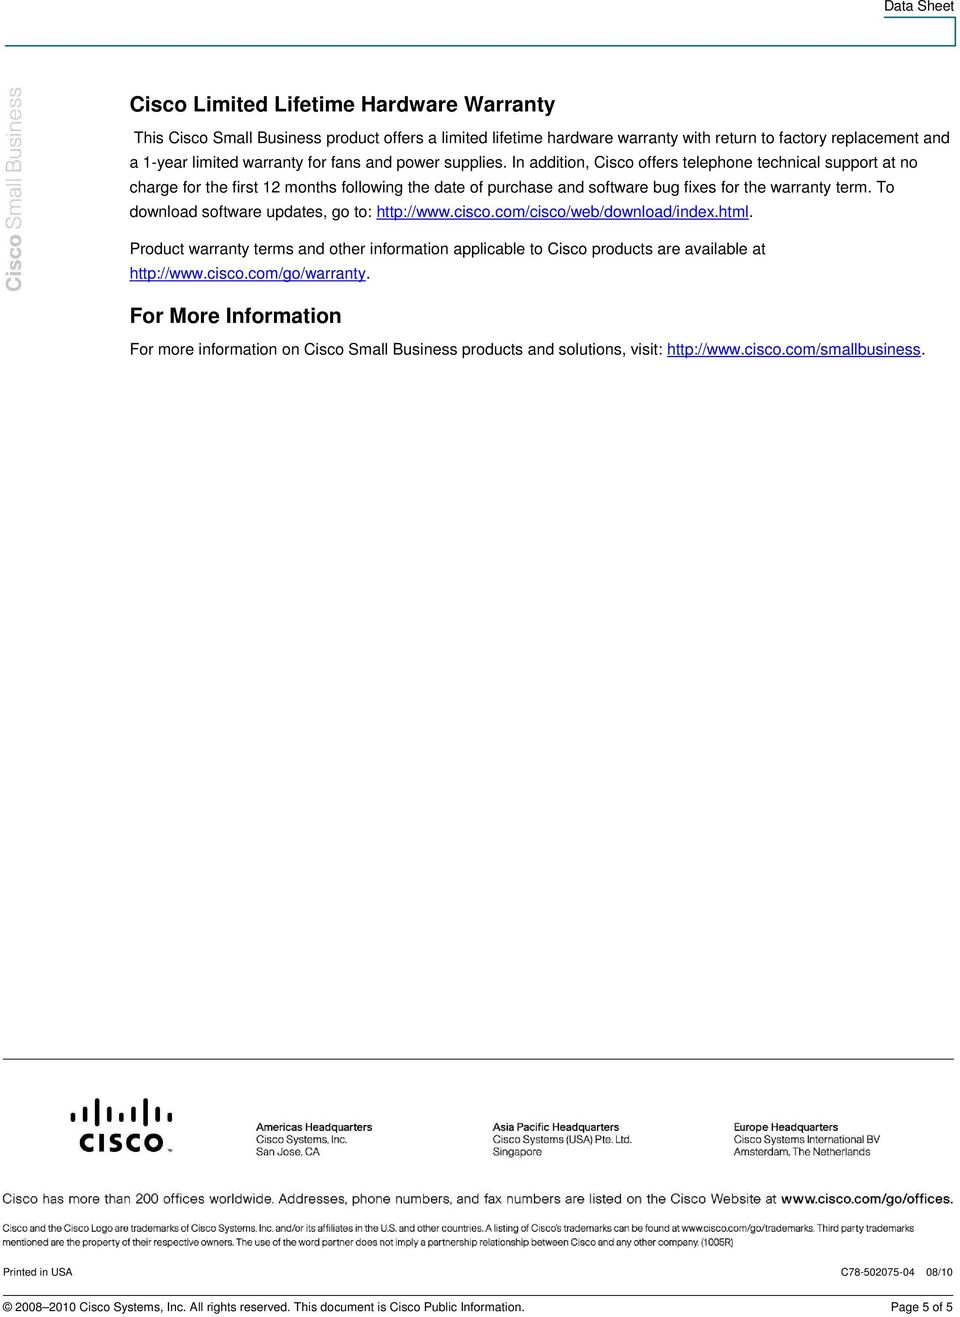 To download software updates, go to: http://www.cisco.com/cisco/web/download/index.html. Product warranty terms and other information applicable to Cisco products are available at http://www.cisco.com/go/warranty.